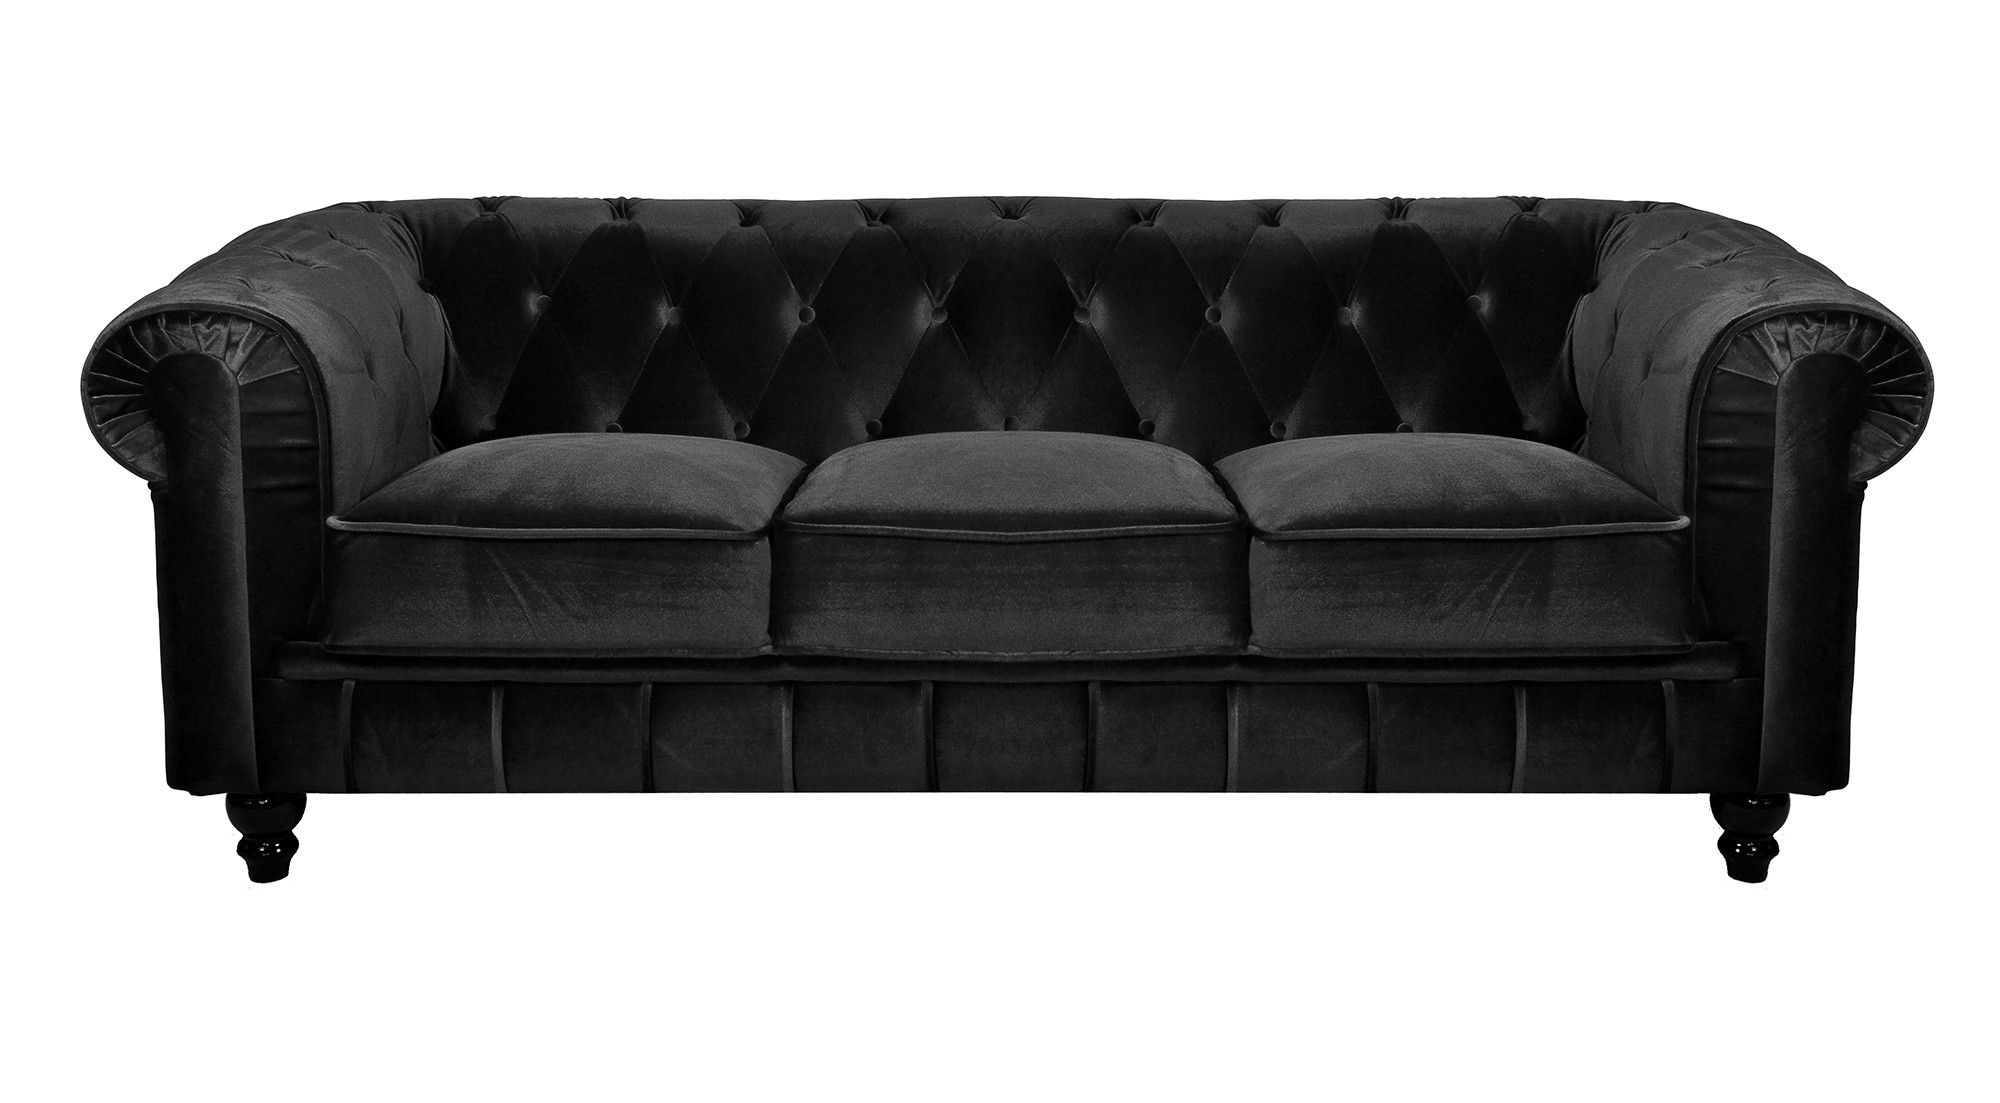 canape convertible chesterfield velours canap id es de d coration de maison yvbrjgzb26. Black Bedroom Furniture Sets. Home Design Ideas